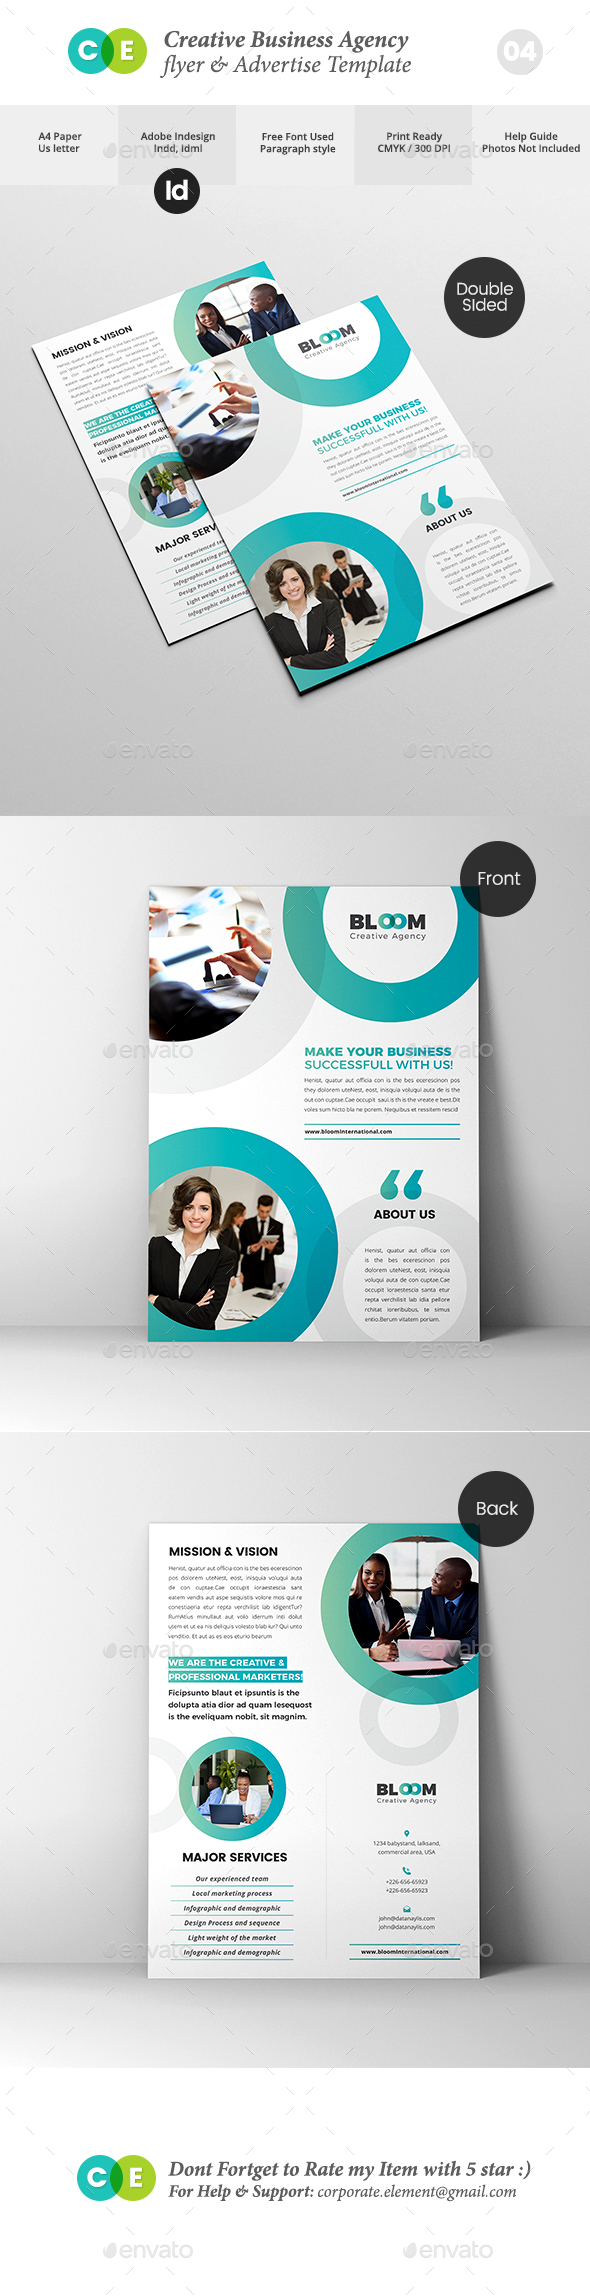 Creative Business Agency Double Sided Flyer V04 - Flyers Print Templates